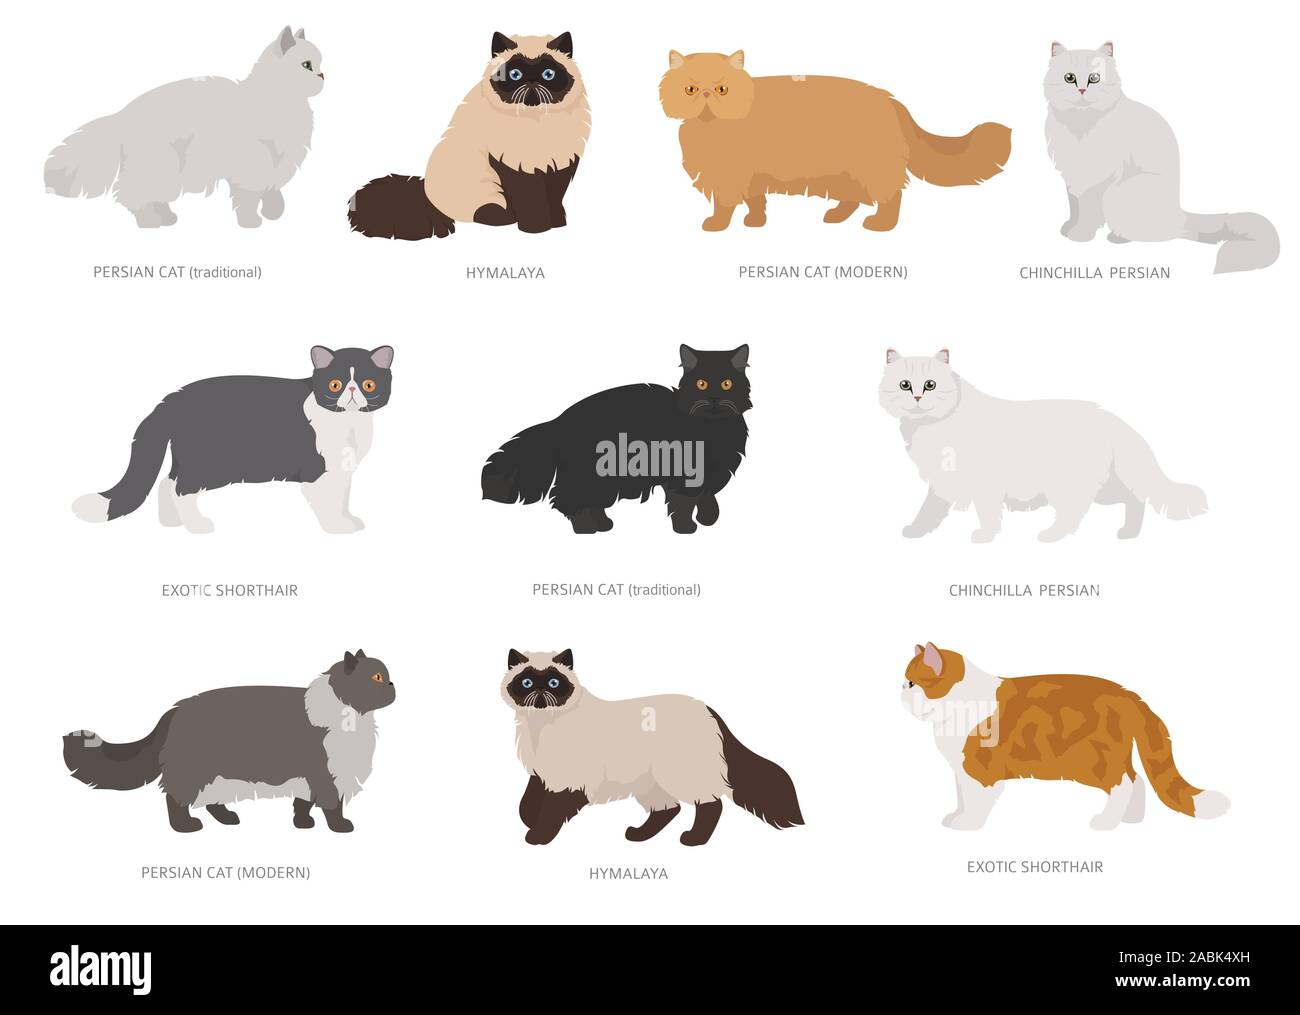 Persian Longhaired Type Cats Domestic Cat Breeds And Hybrids Collection Isolated On White Flat Style Set Vector Illustration Stock Vector Image Art Alamy